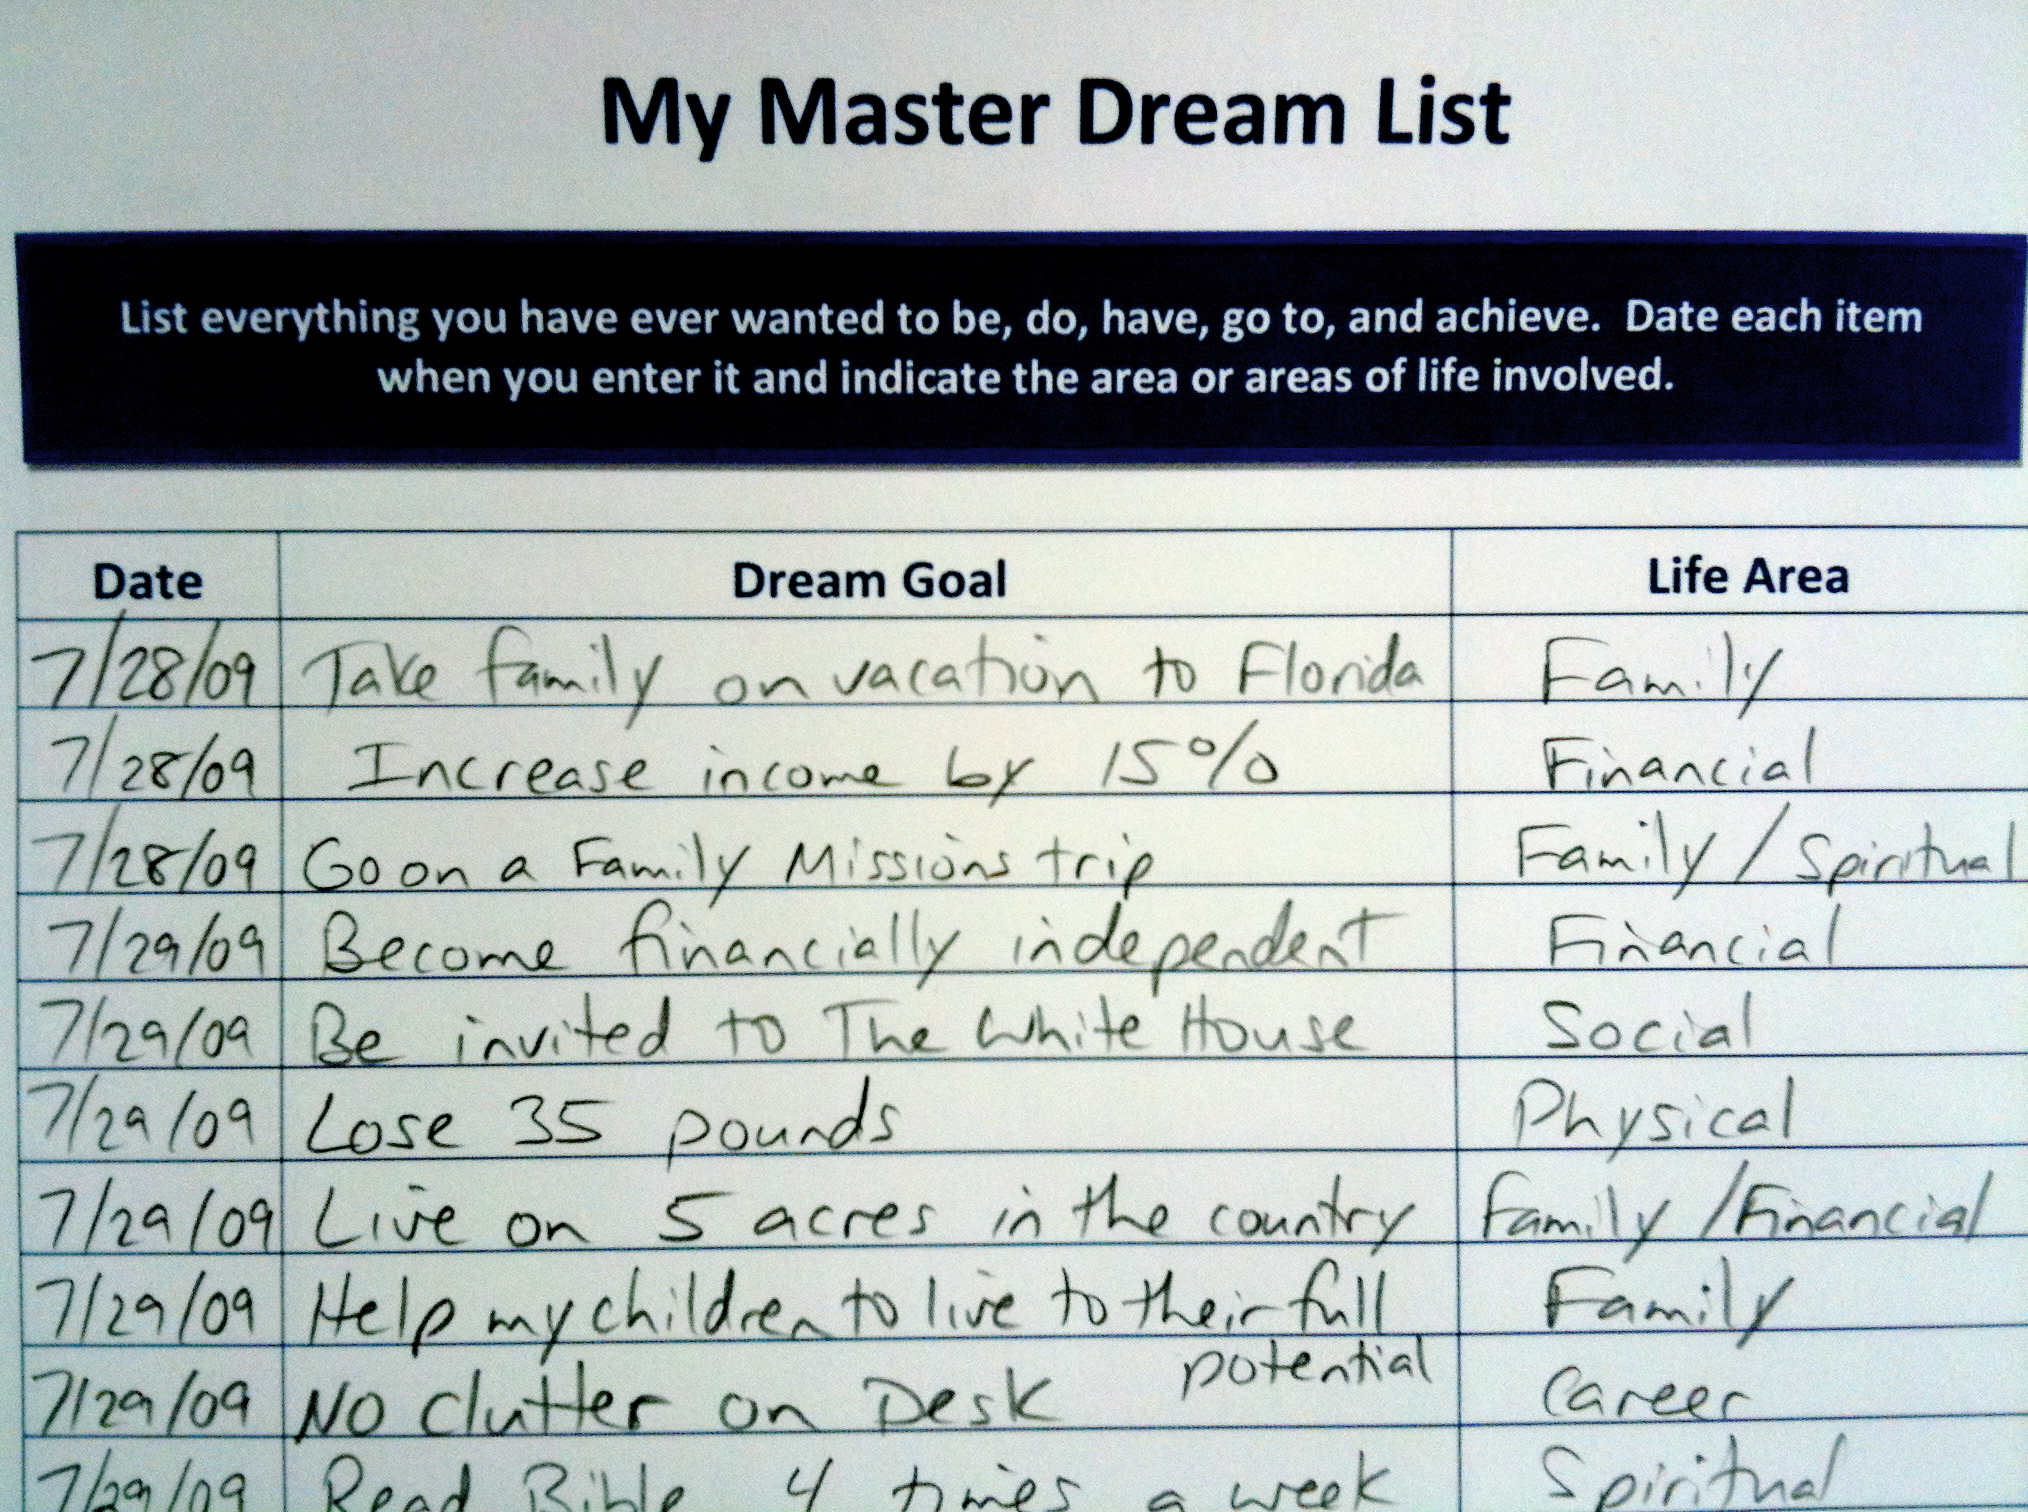 Do You Have a Master Dream List to Keep Track of Your Ideas, Goals ...